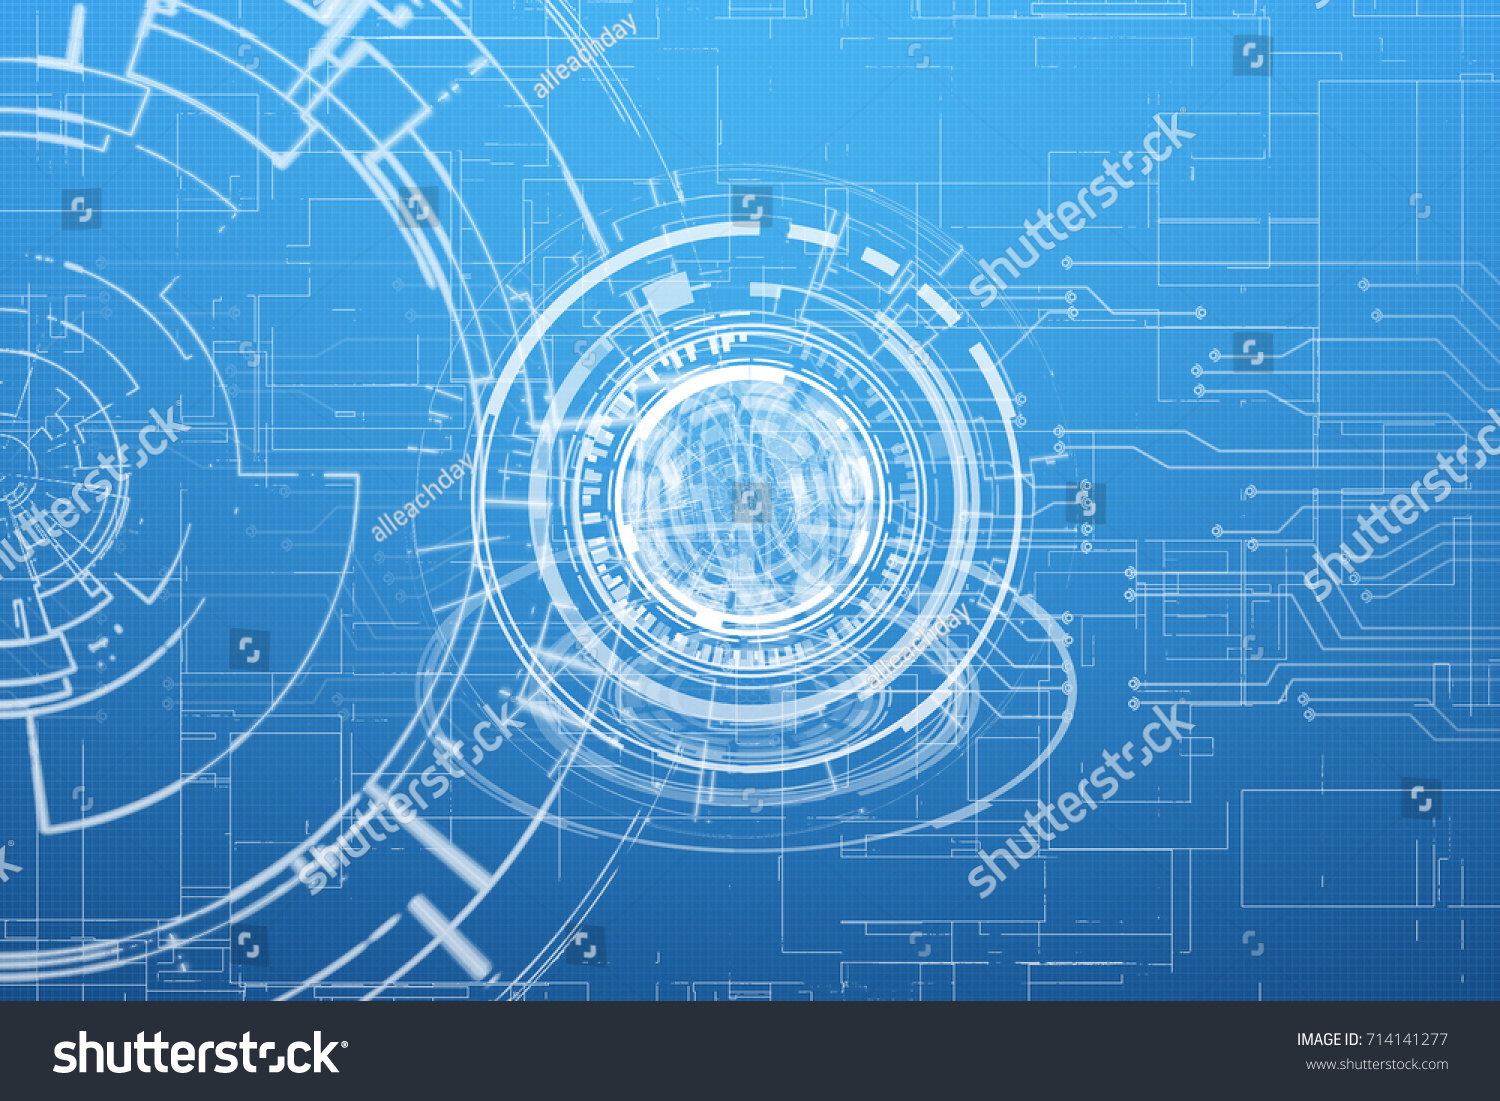 Abstract Blueprint Hi Tech Hud Interface Stock Illustration ...